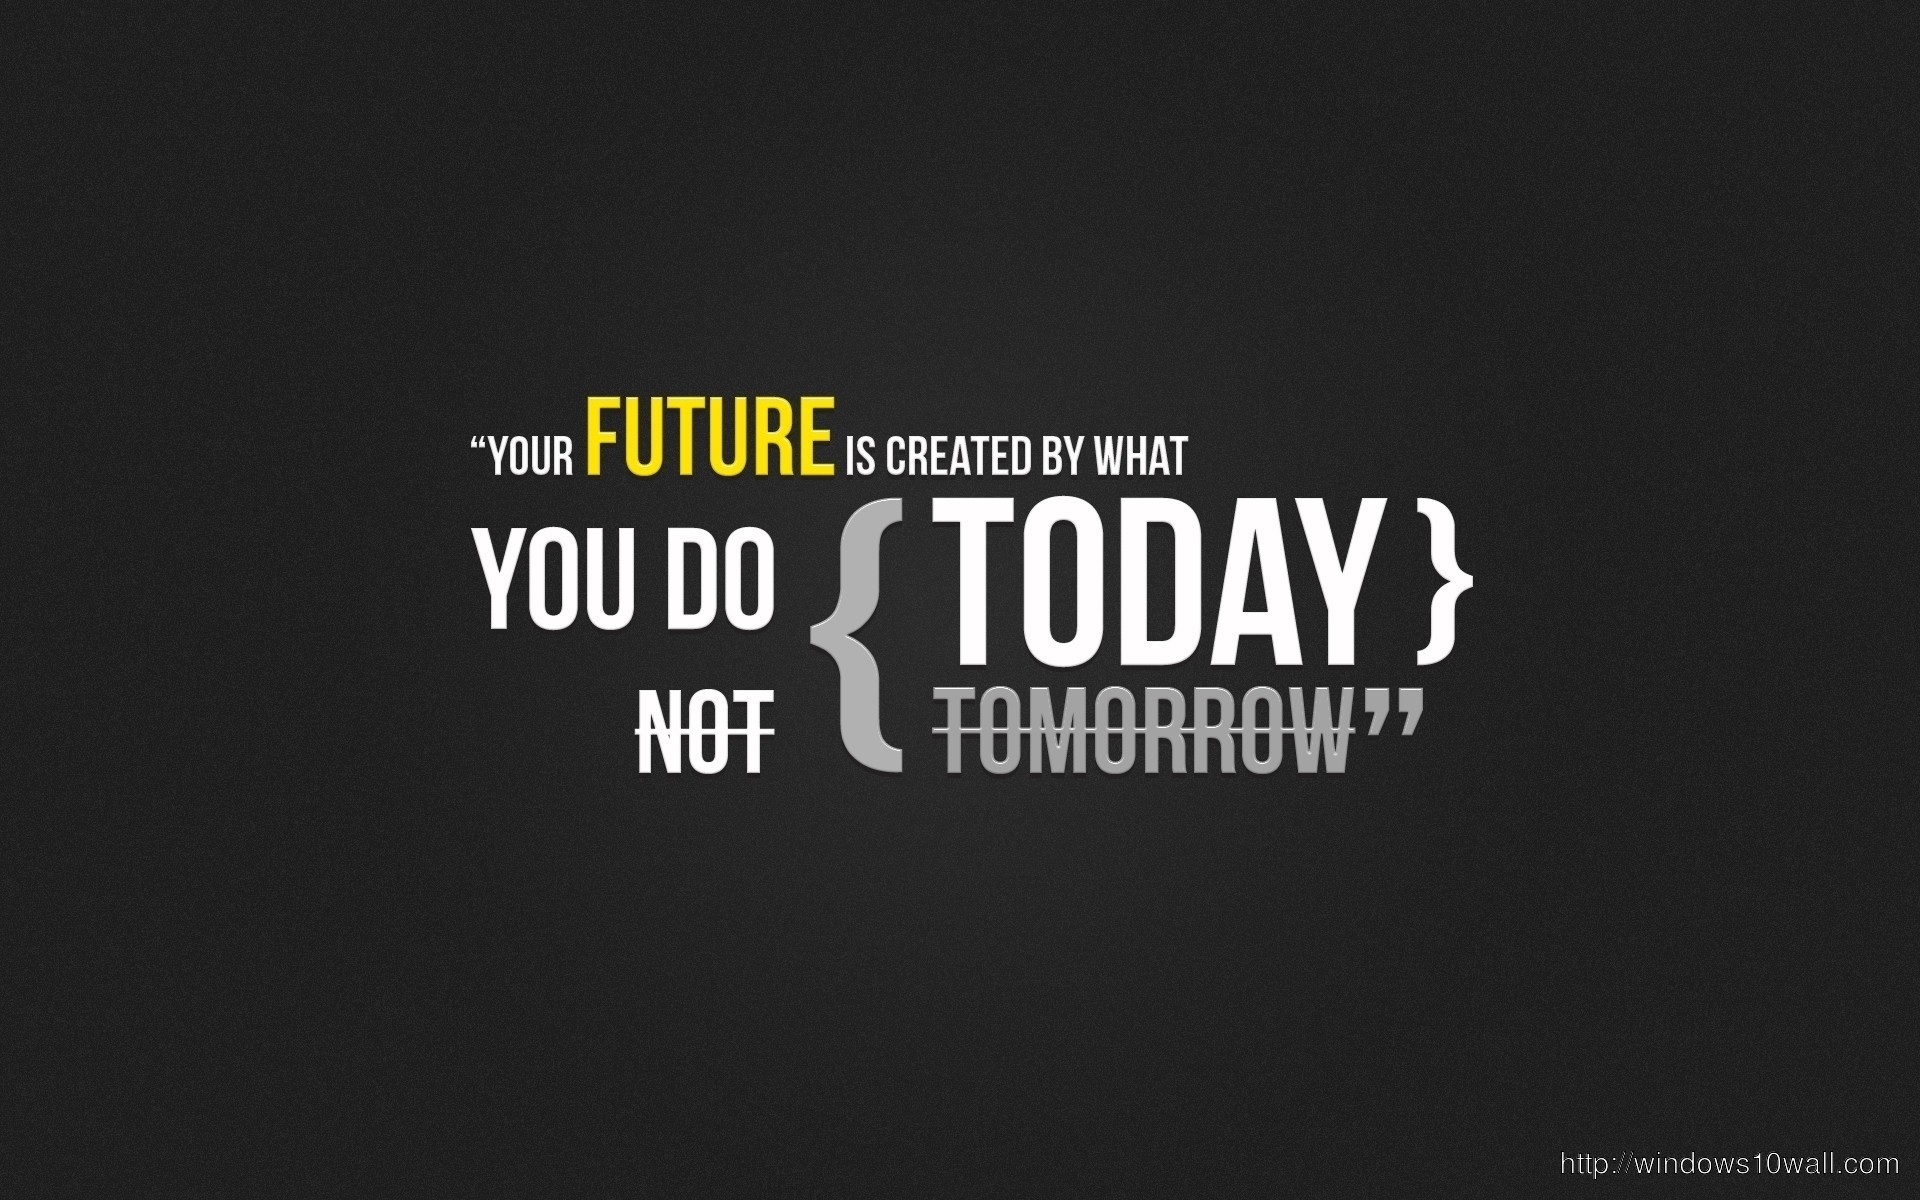 Future Quotes Hd Wallpaper Windows 10 Wallpapers